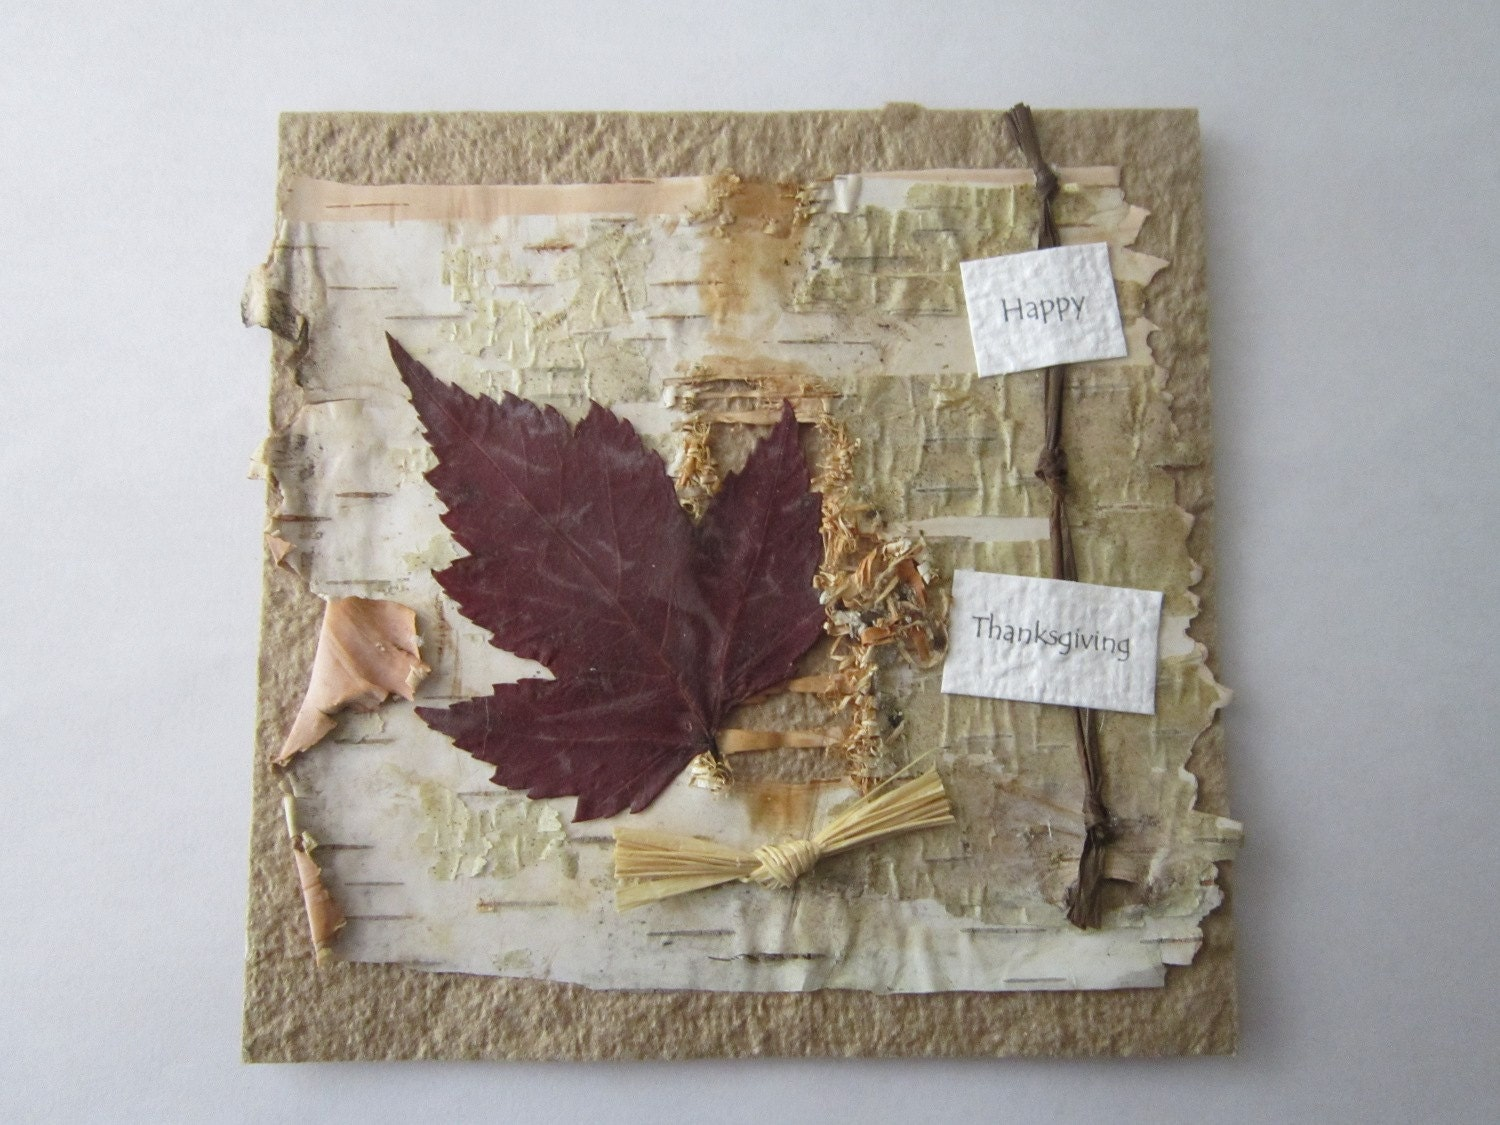 Handmade Paper Thanksgiving Card - Thank You Card - CIJ - Christmas in July - 100% Recycled Paper Card - Eco Friendly Card - - ElodiesShop